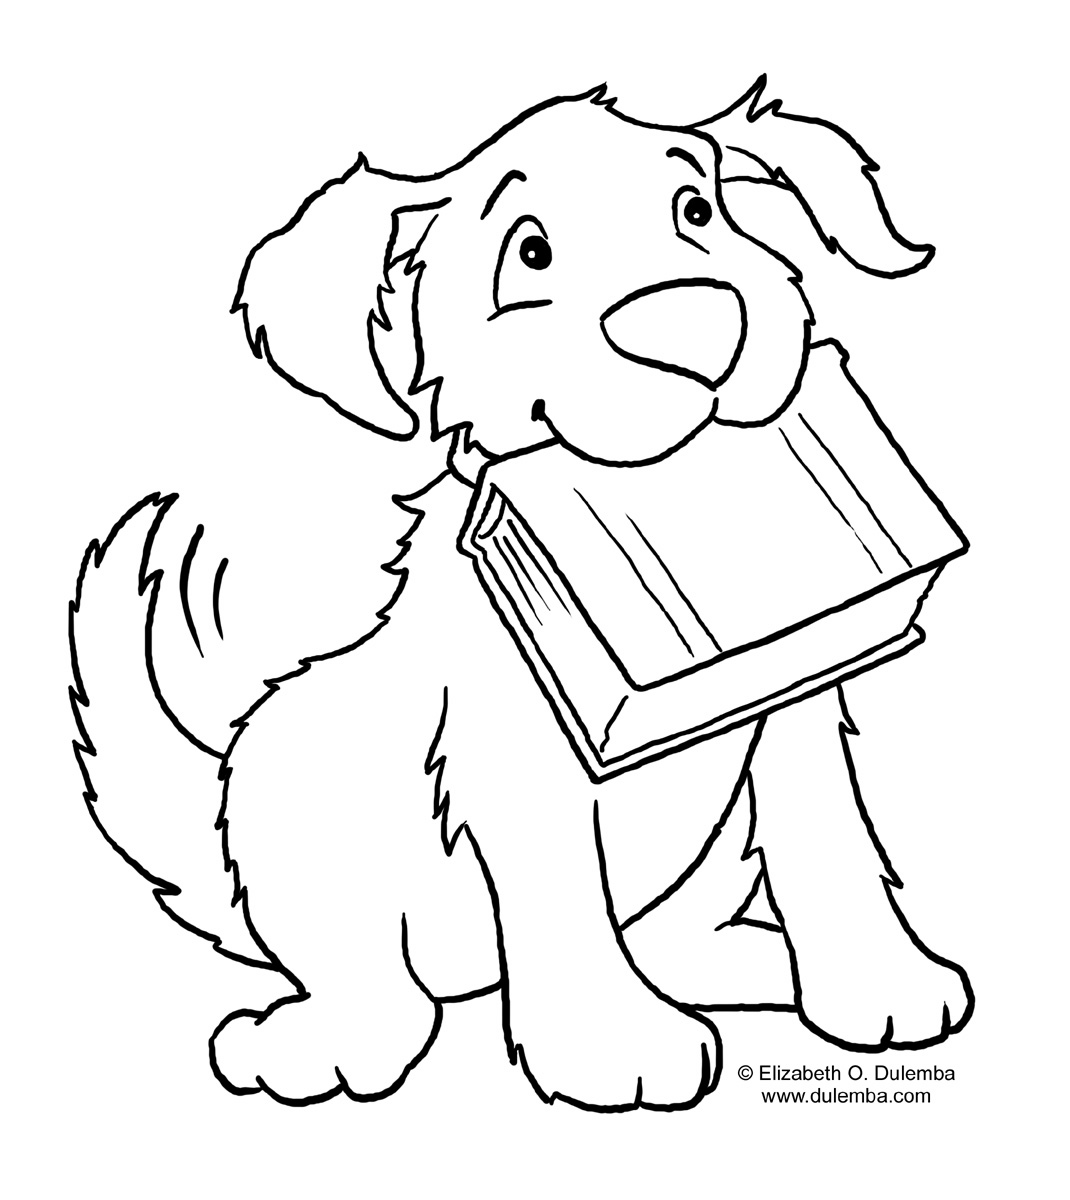 1070x1200 Impressive Kids Coloring Pages Best Coloring B